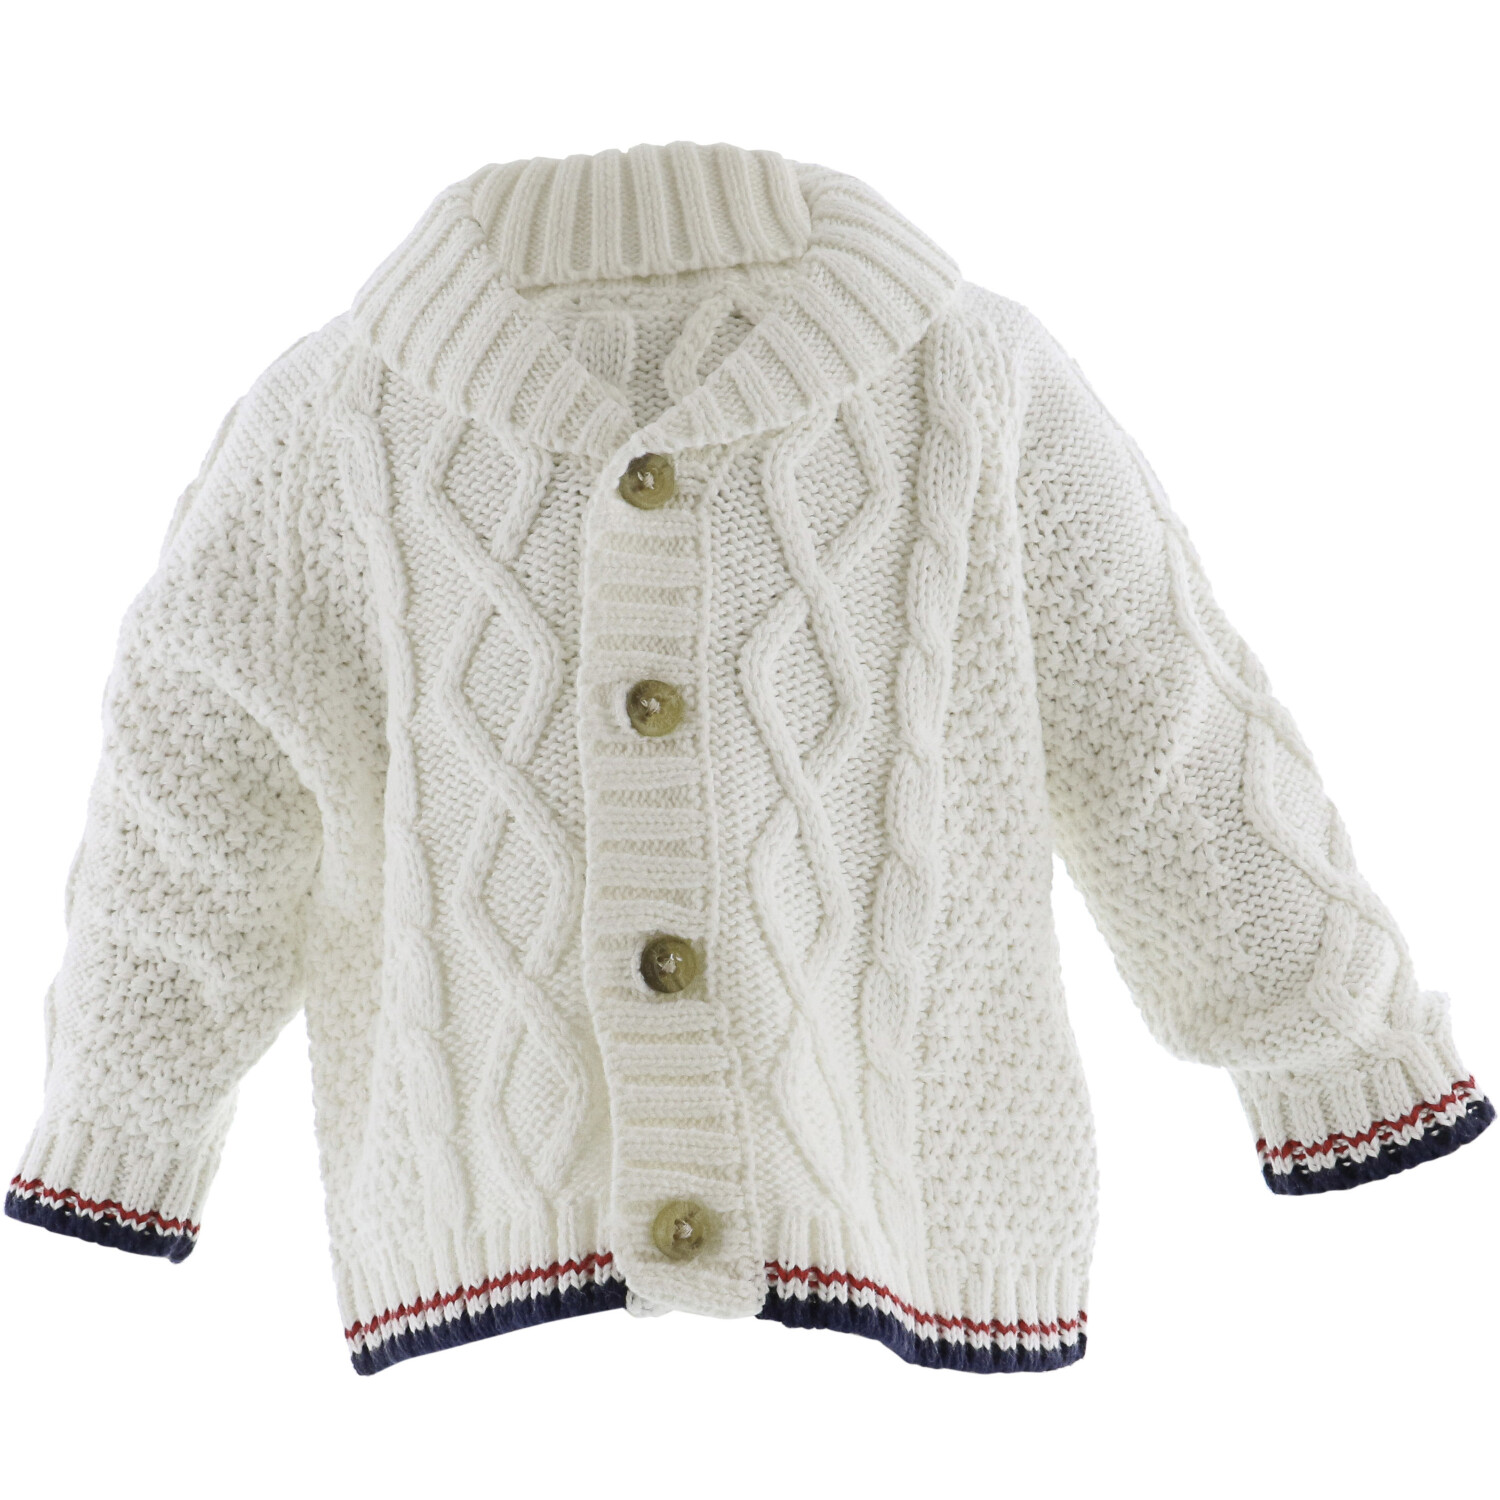 Janie And Jack White Cable Knit Cardigan - 6-12 Months